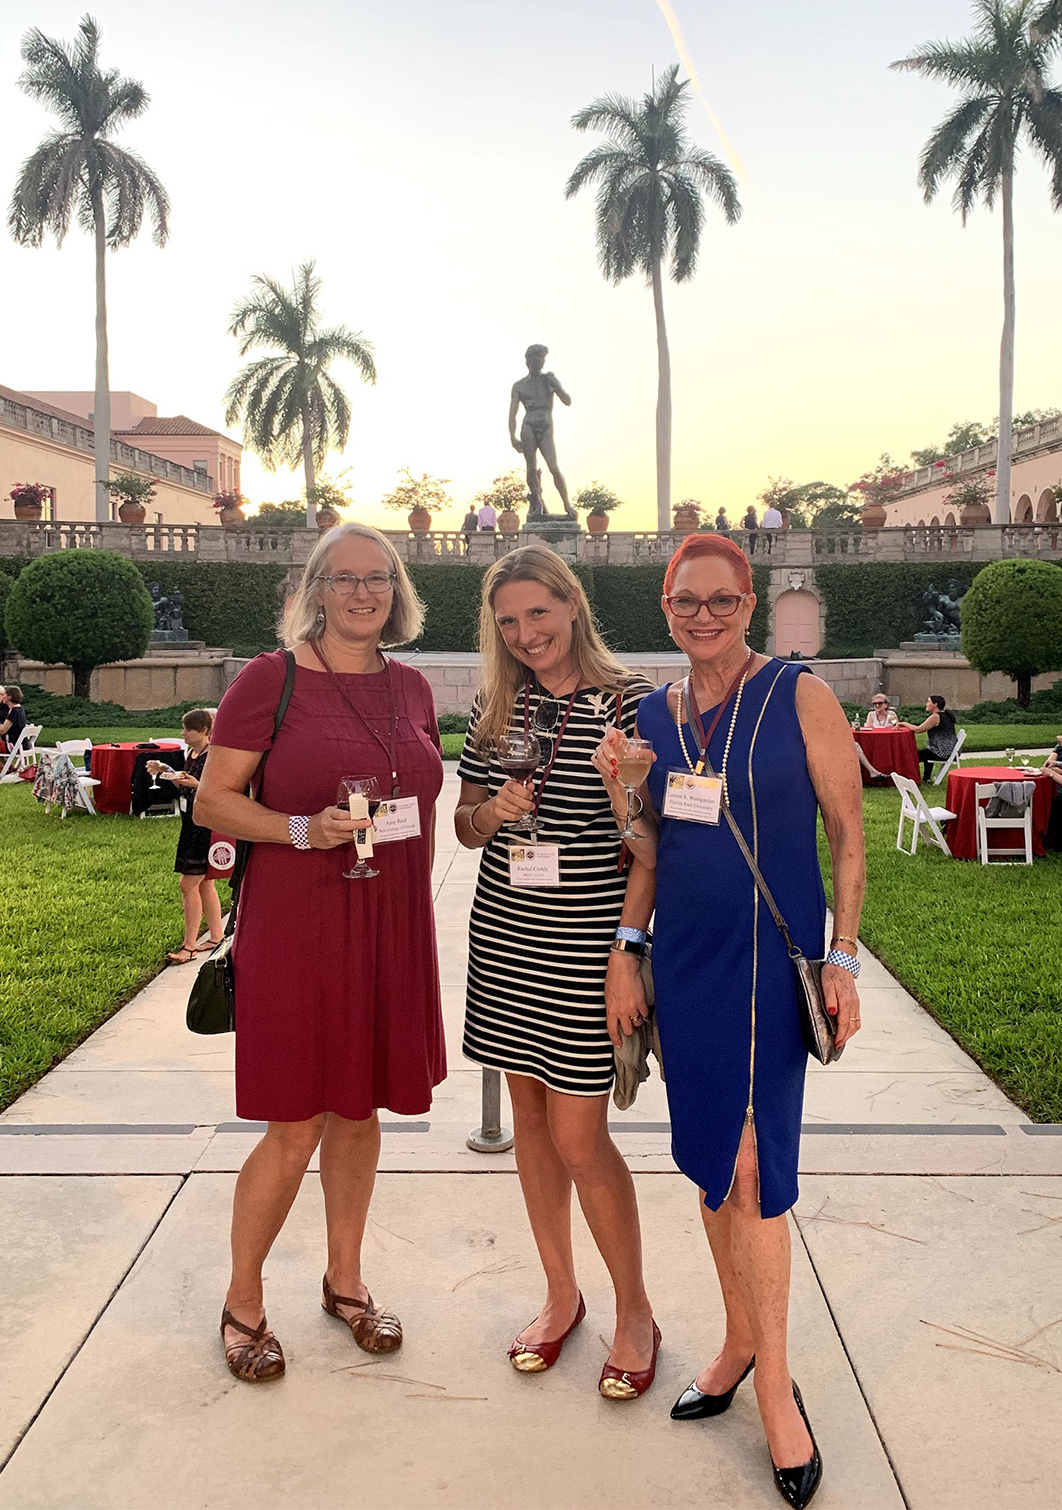 Dr. Weingarden with conference participants in The Ringling courtyard